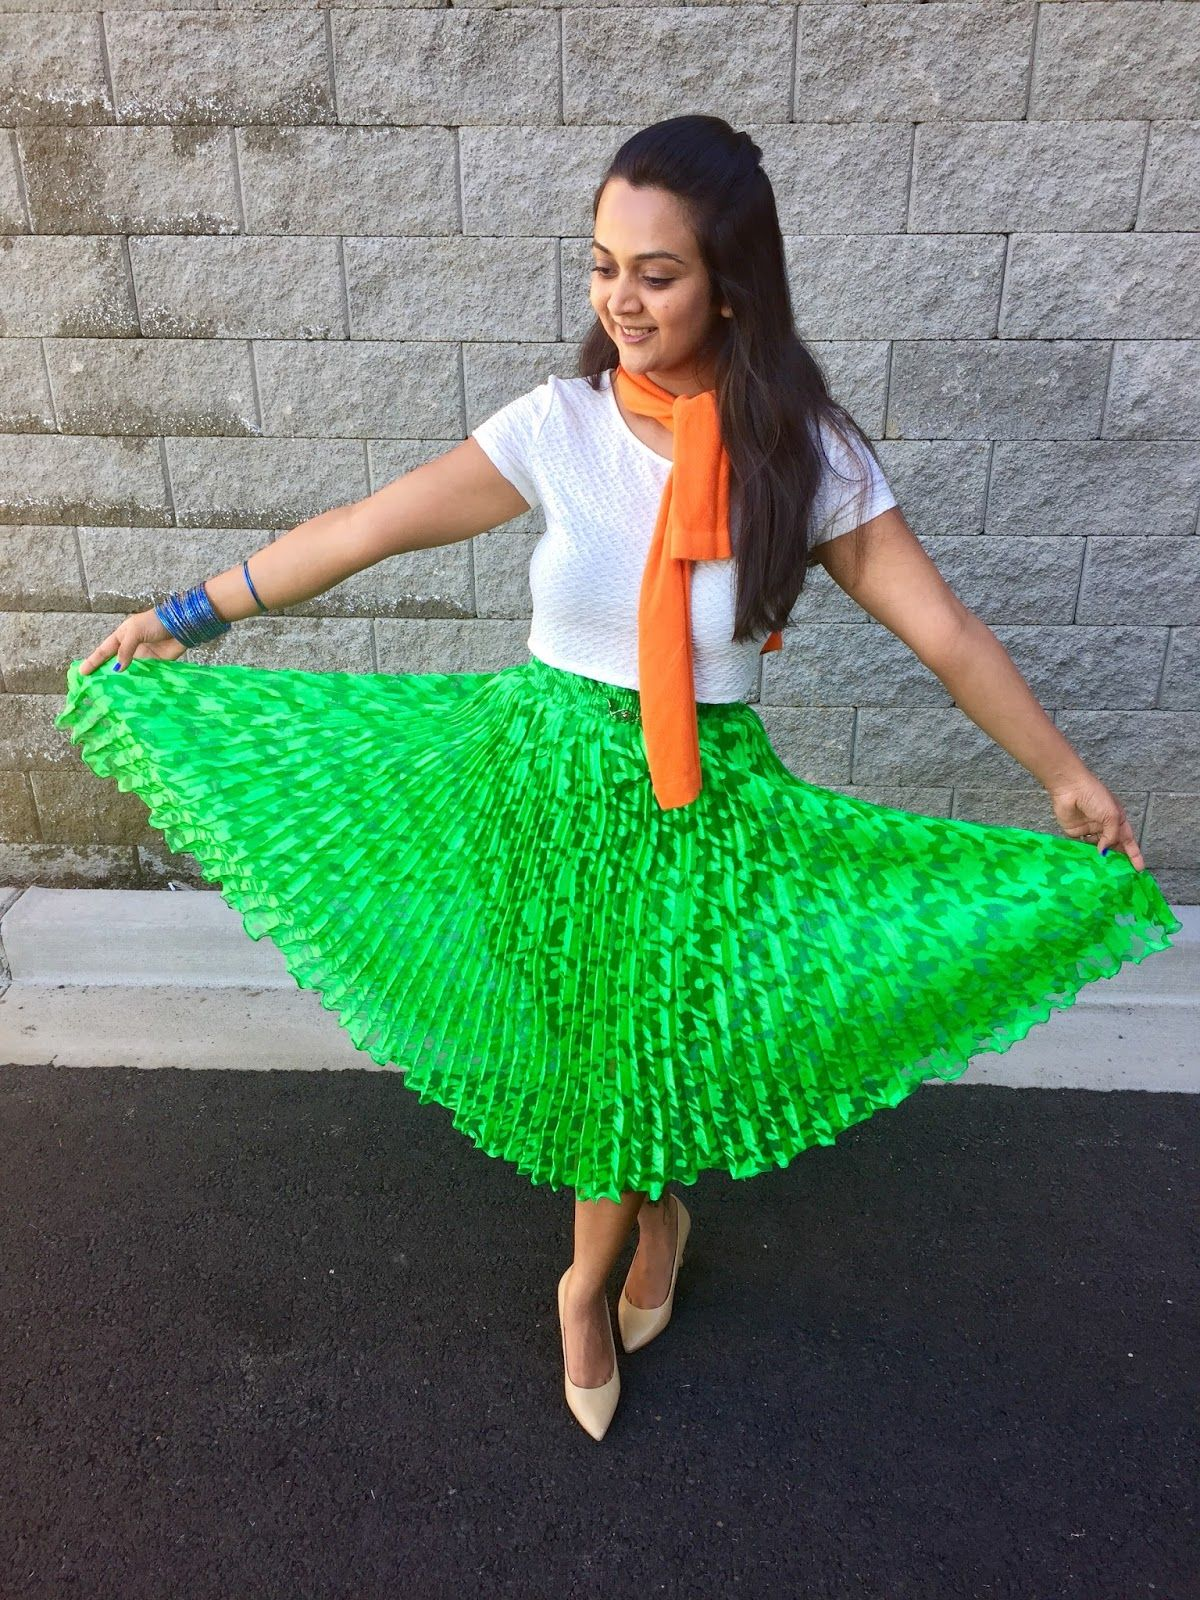 f4b22b194f Indian Flag inspired outfits, Color blockin outfits, tricolor outfits,  green skirt with white top and nude heels, ananya kiran